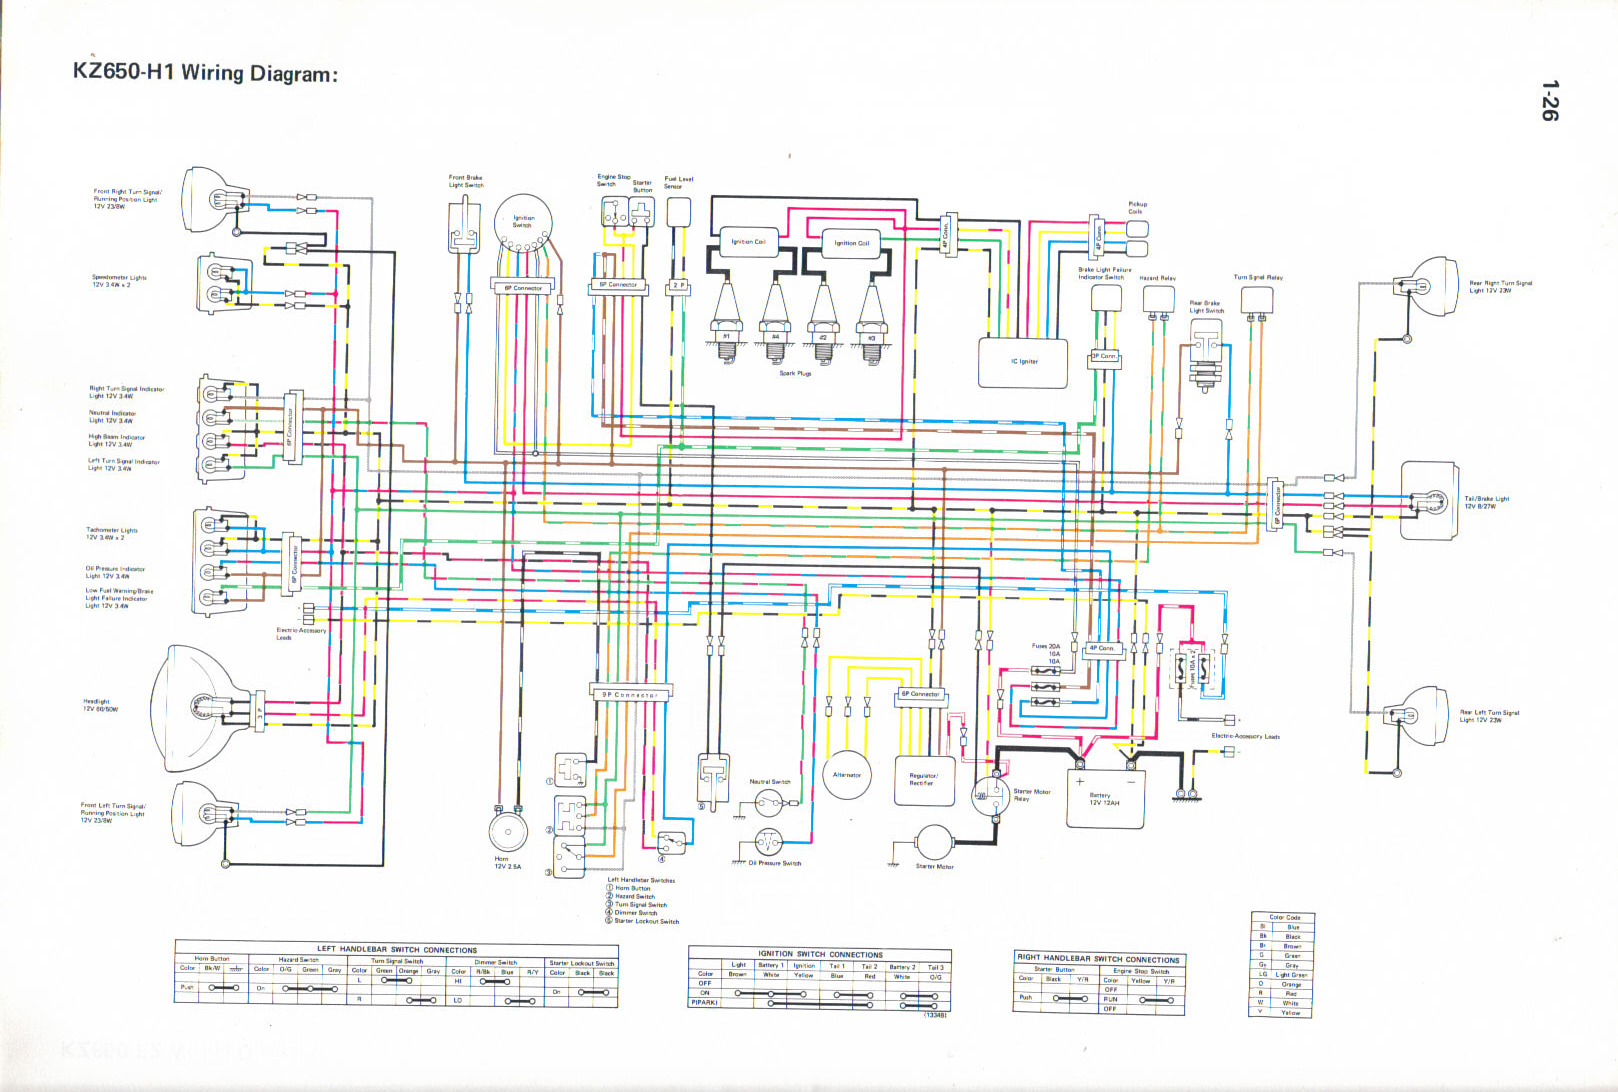 H1 Wiring Diagrams | Wiring Diagram 2019